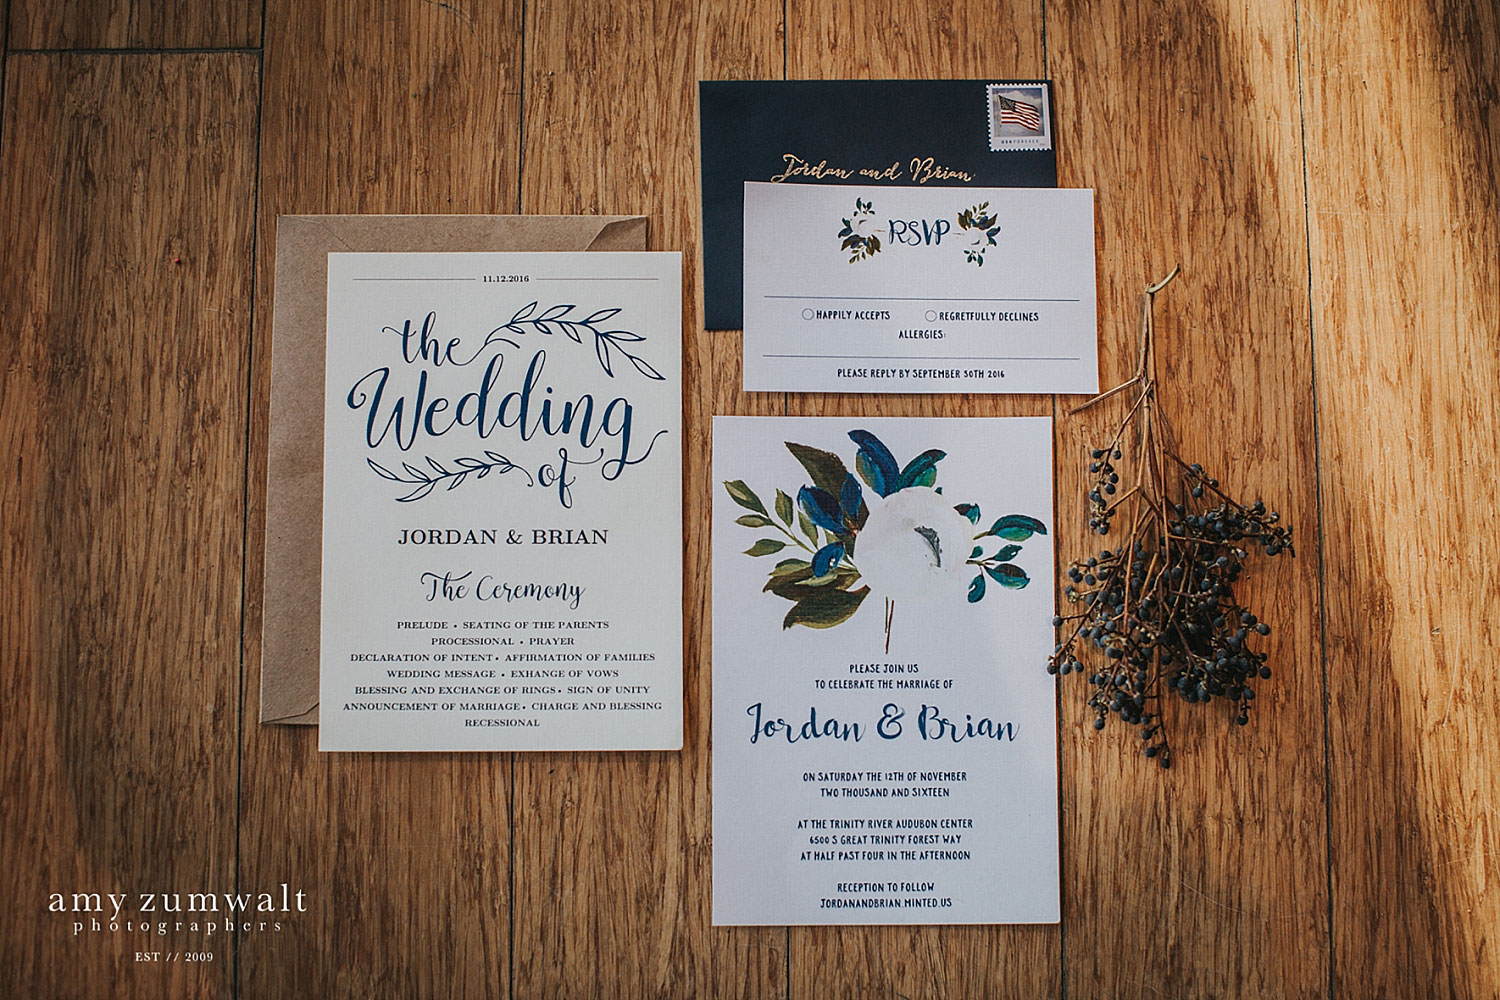 Navy wedding invitation with a kraft paper envelope